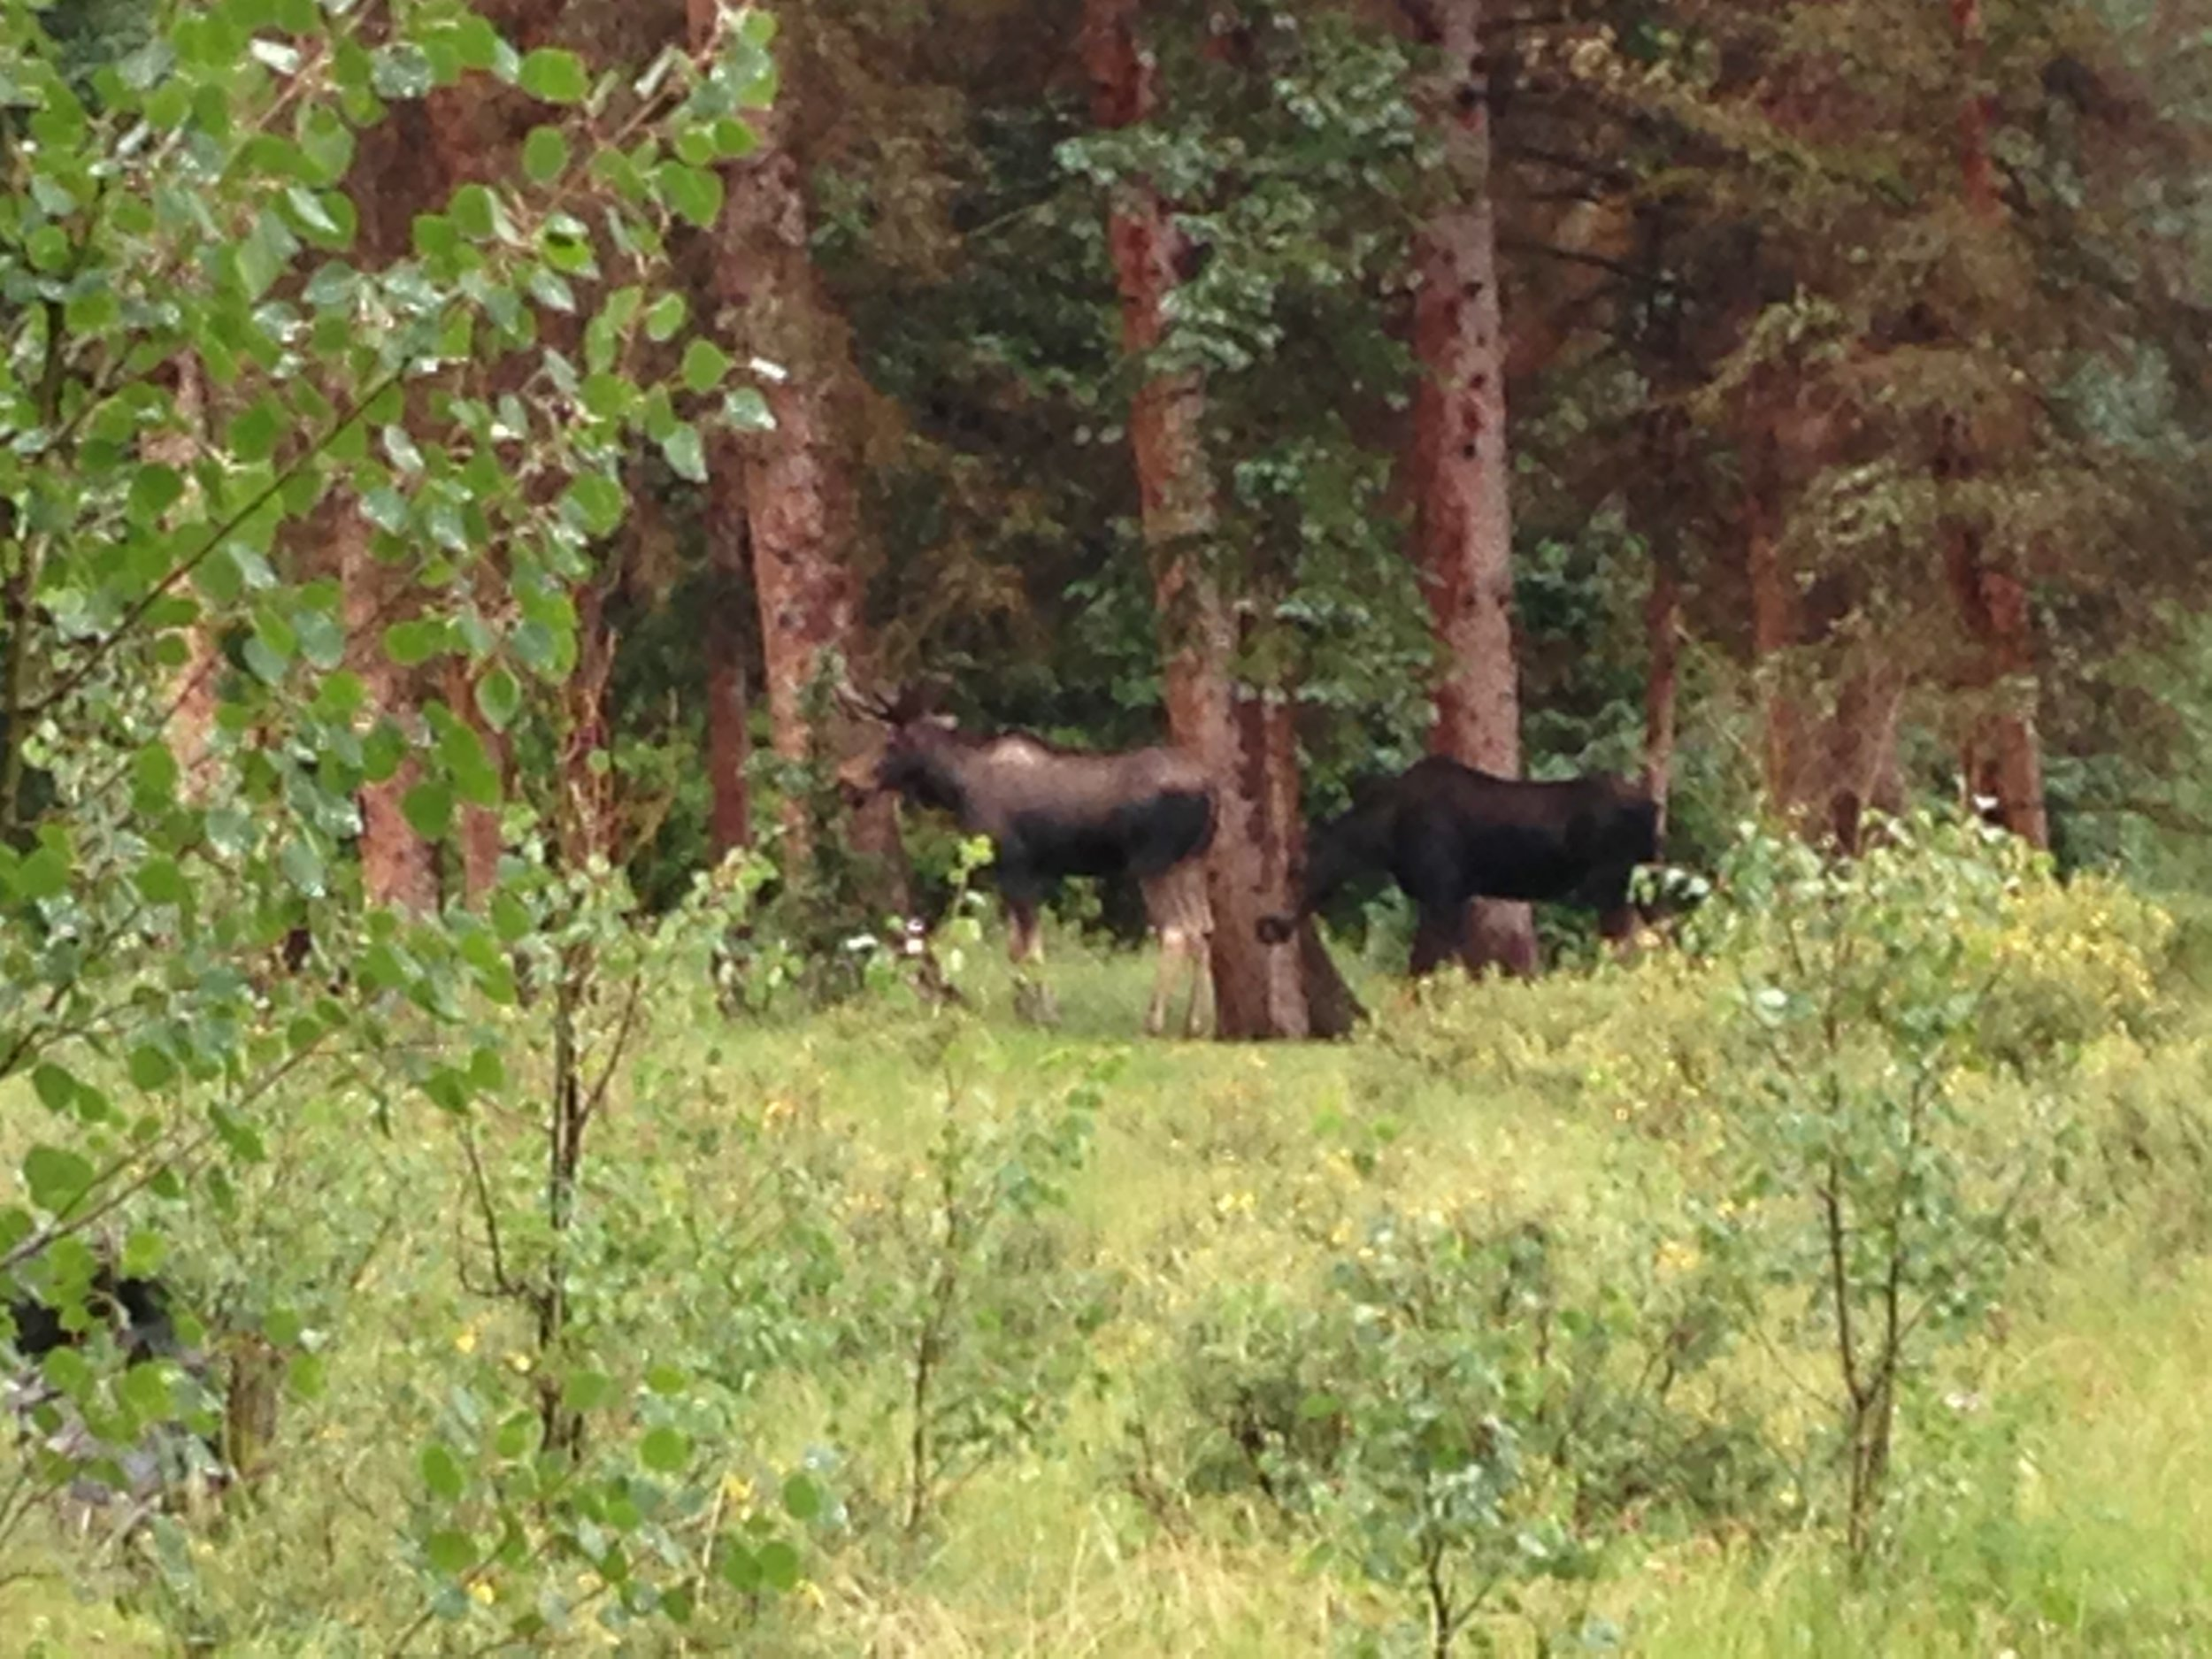 Day 31:  This epic day included two curious moose on the edge of camp, flash flood warnings, bone-chilling rain, finding a lost child, and finally hot food, dry clothes, and a warm bed in Silverton.  Daily mileage: 9.6. Total miles: 425.2.